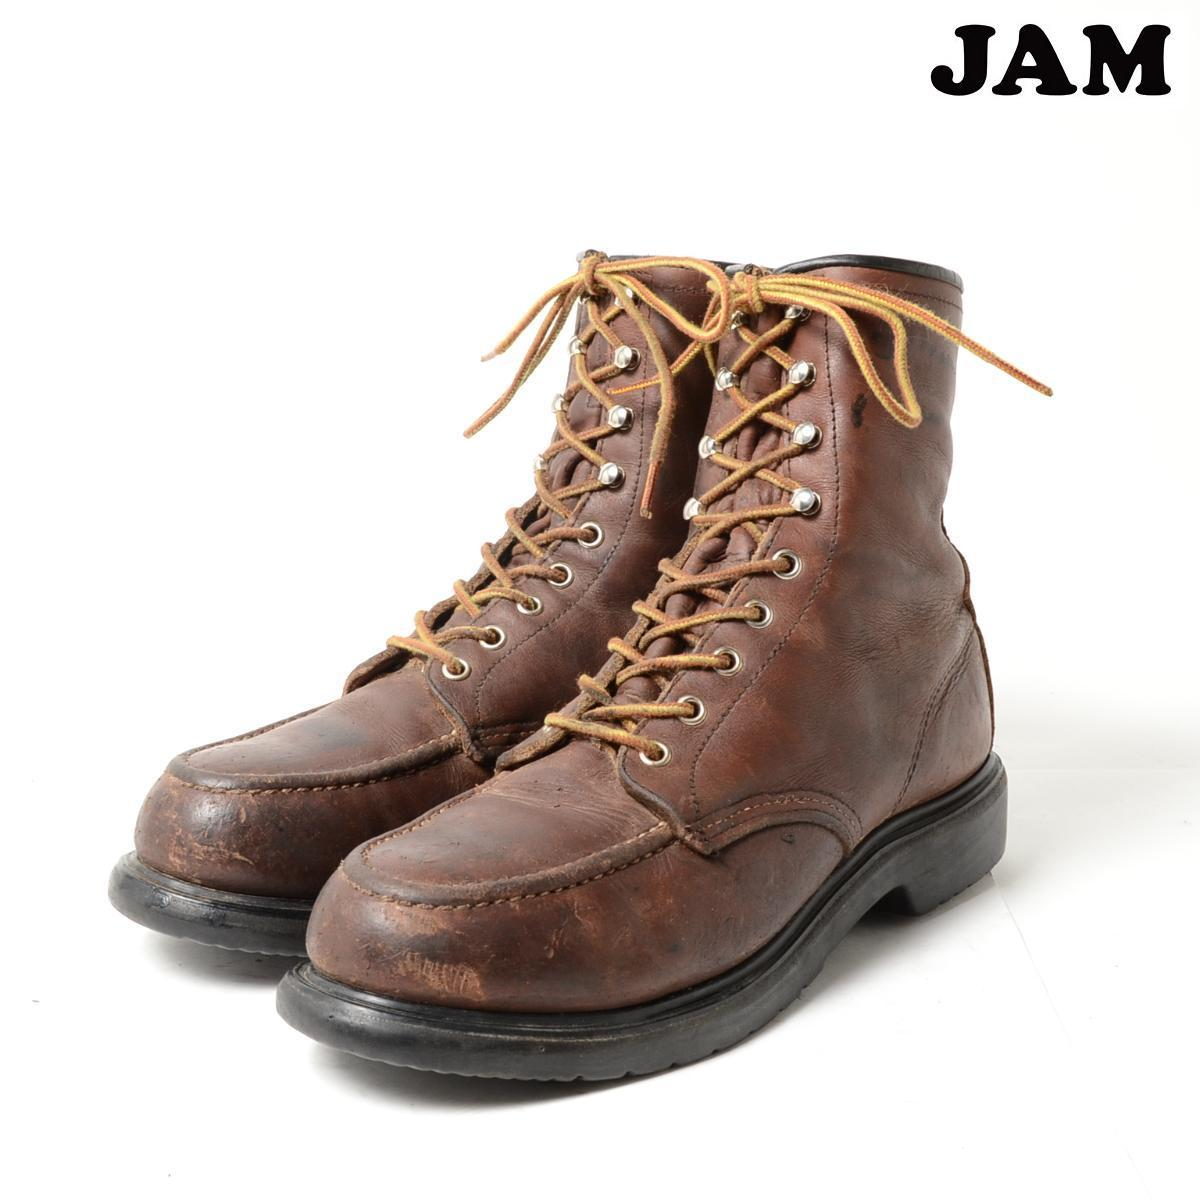 Red Wing Lace Up Boots Boot Yc